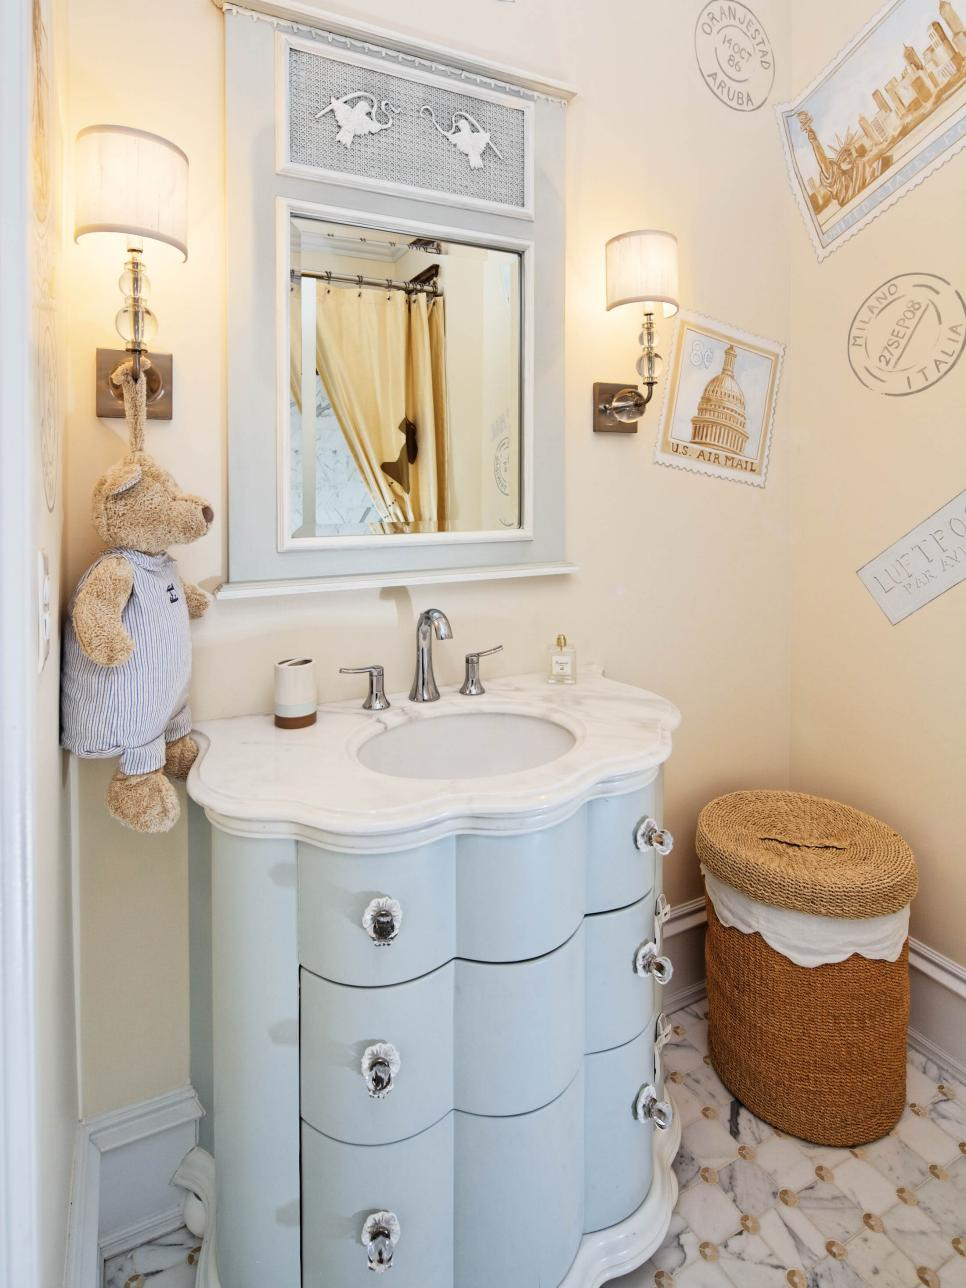 Neutral Bathroom With Blue Vanity, Sconces and Wall Decals